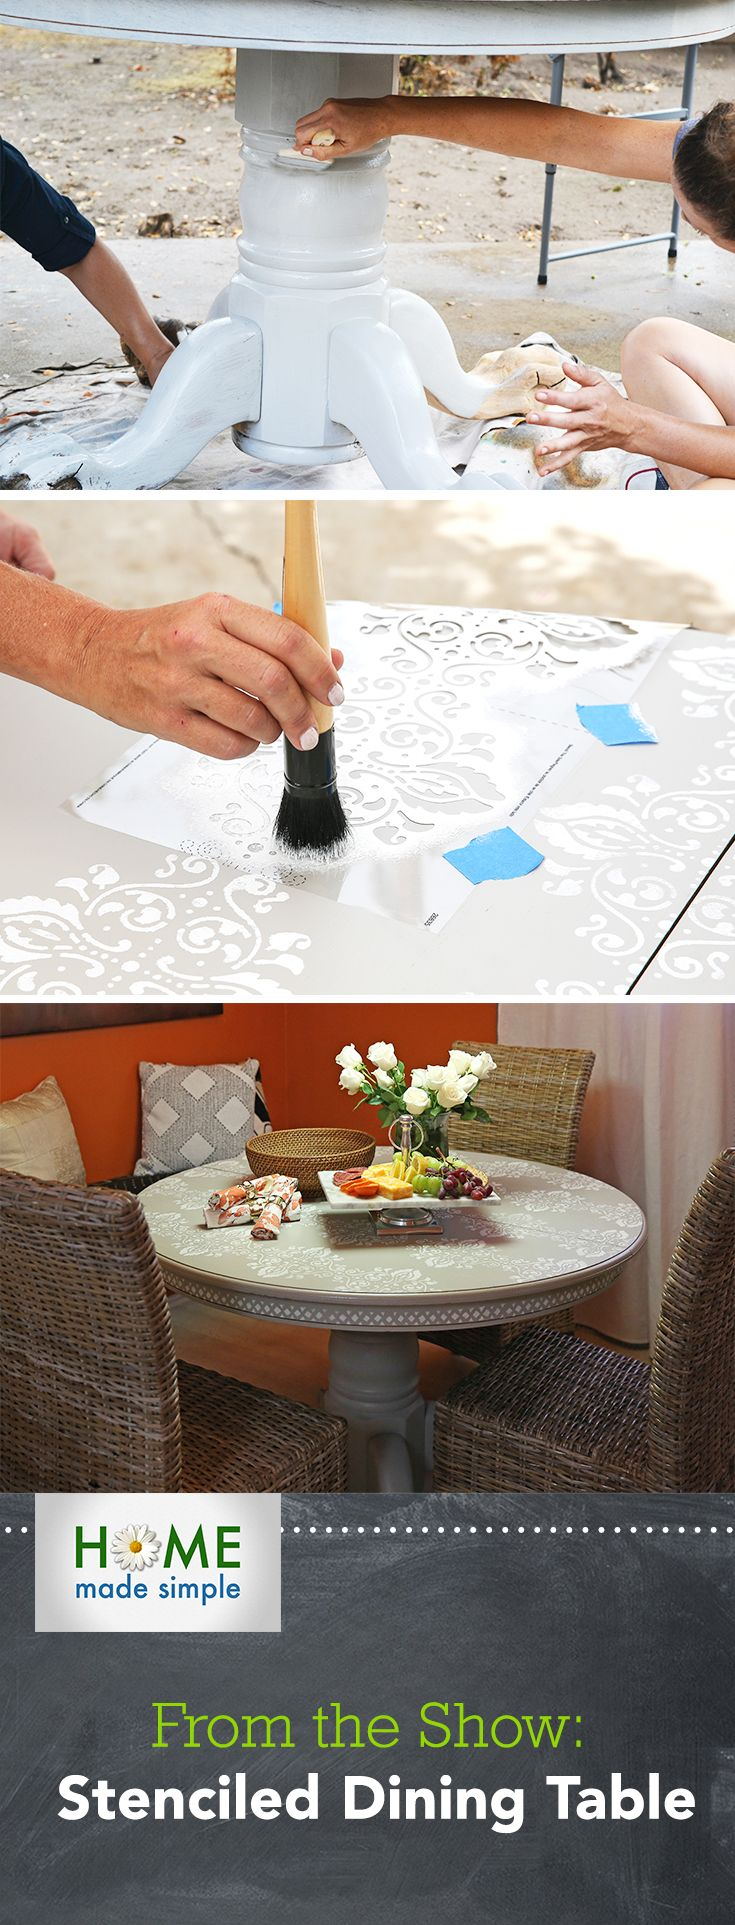 Repurpose an old dining table into a